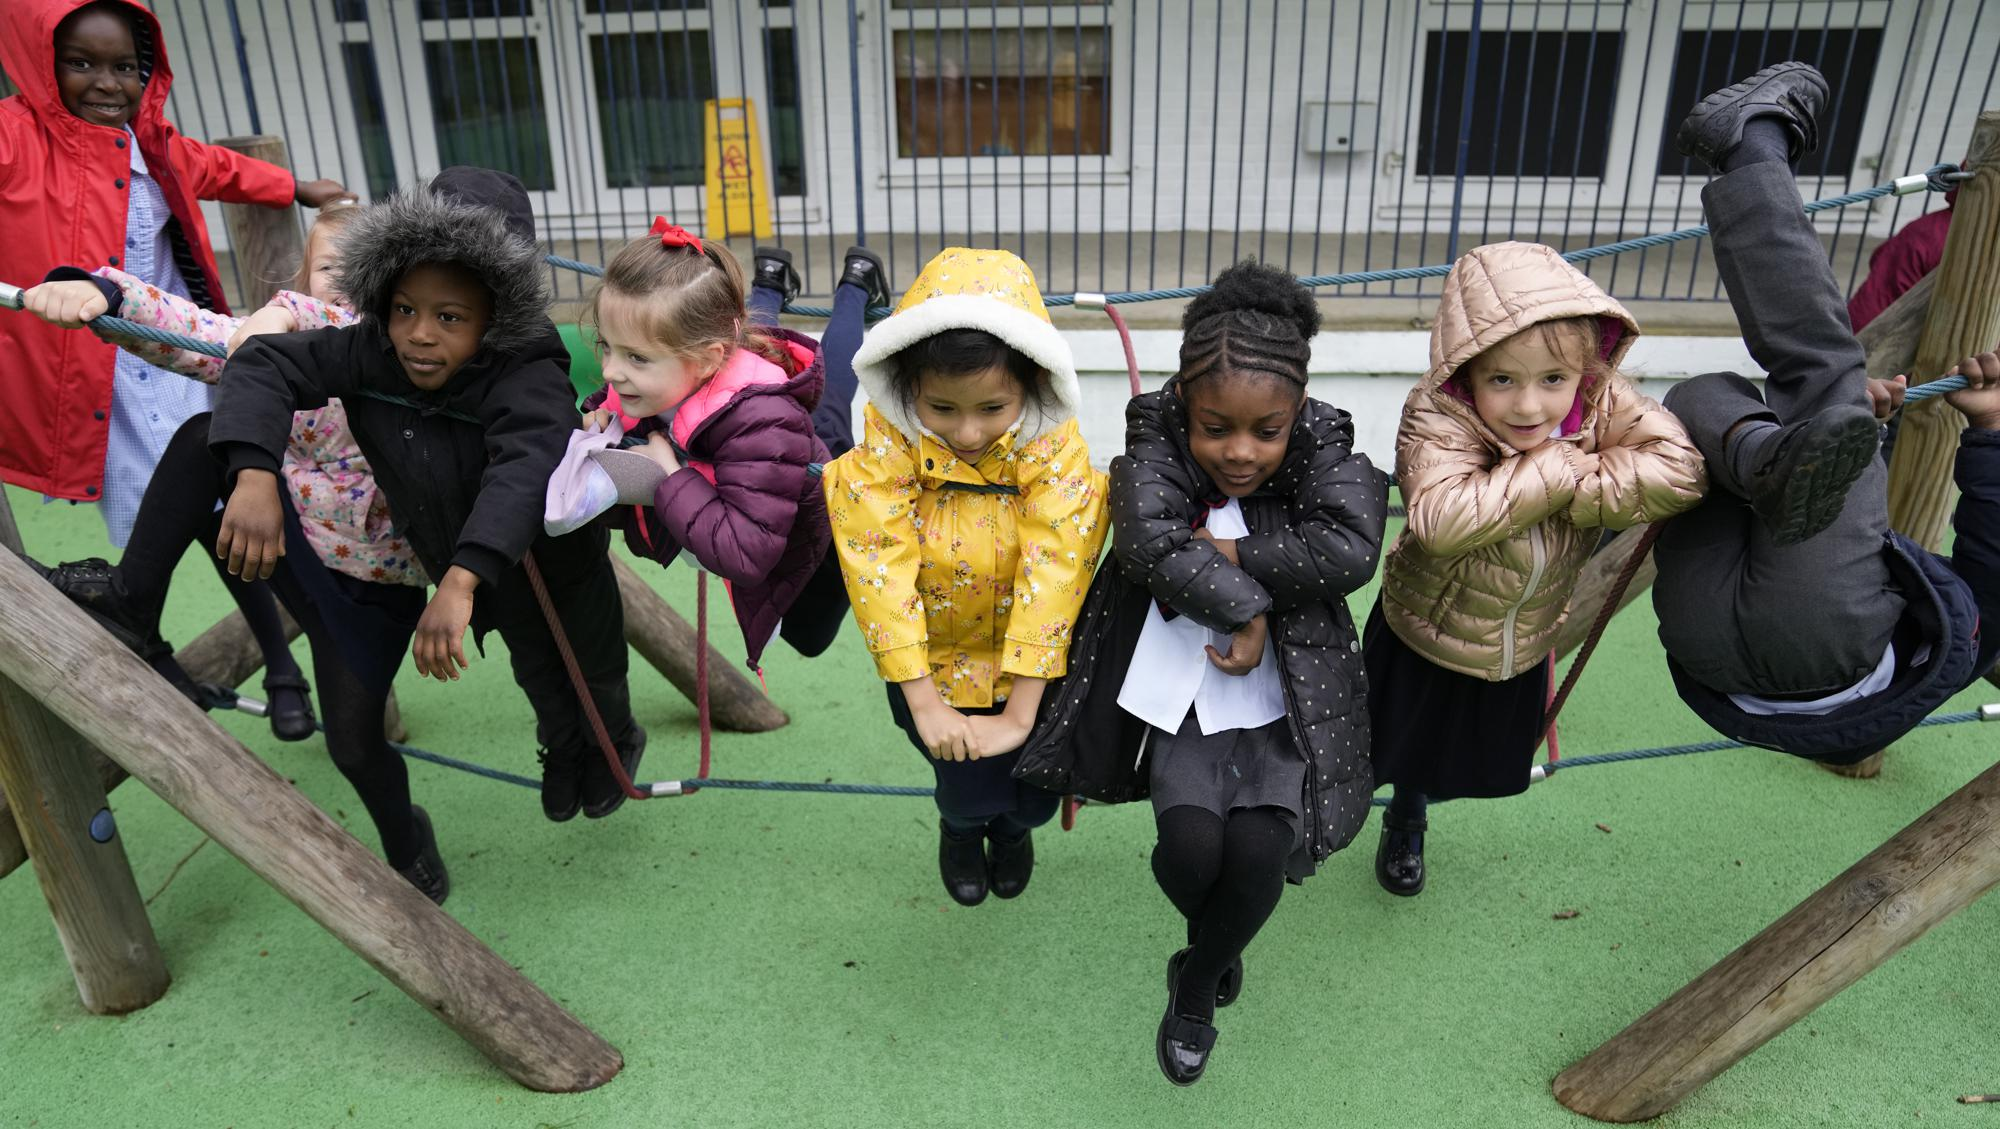 Faith, left, with some of her fellow pupils Julia, Nana, Yaw, Alexandra, Leandra, and Amariah, right play on a rope swing at the Holy Family Catholic Primary School during a break, in Greenwich, London, Wednesday, May 19, 2021. Holy Family, like schools across Britain, is racing to offset the disruption caused by COVID-19, which has hit kids from low-income and ethnic minority families hardest. (AP Photo/Alastair Grant)